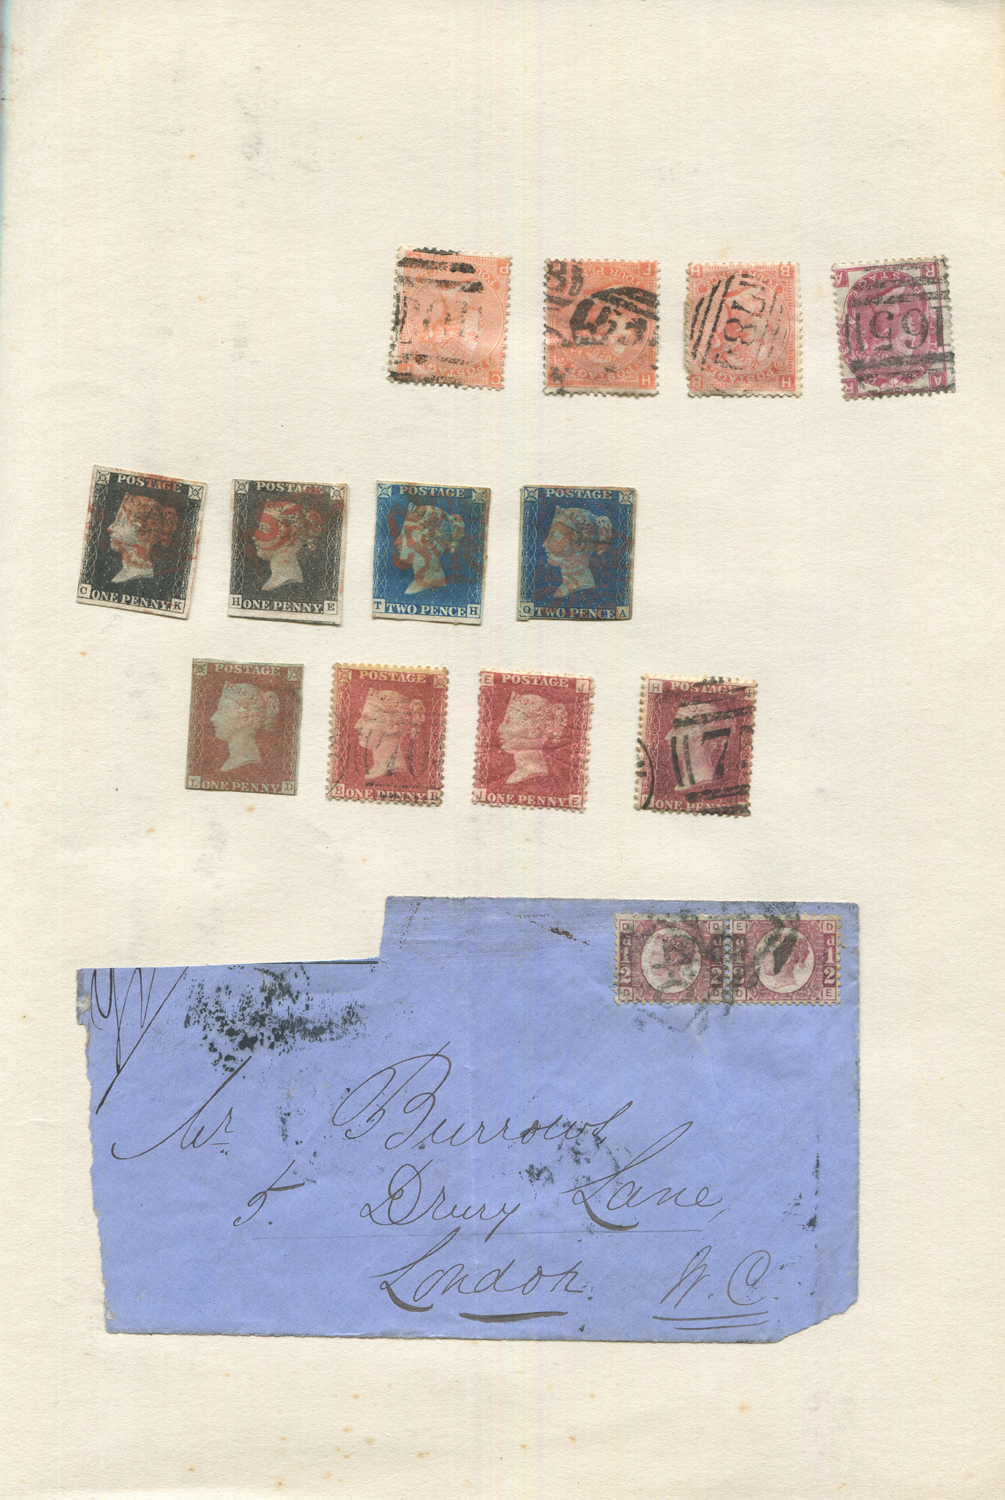 Lot 3030 - Four albums of world stamps, including two Great Britain 1840 1d black with two 2d blue used, 1d